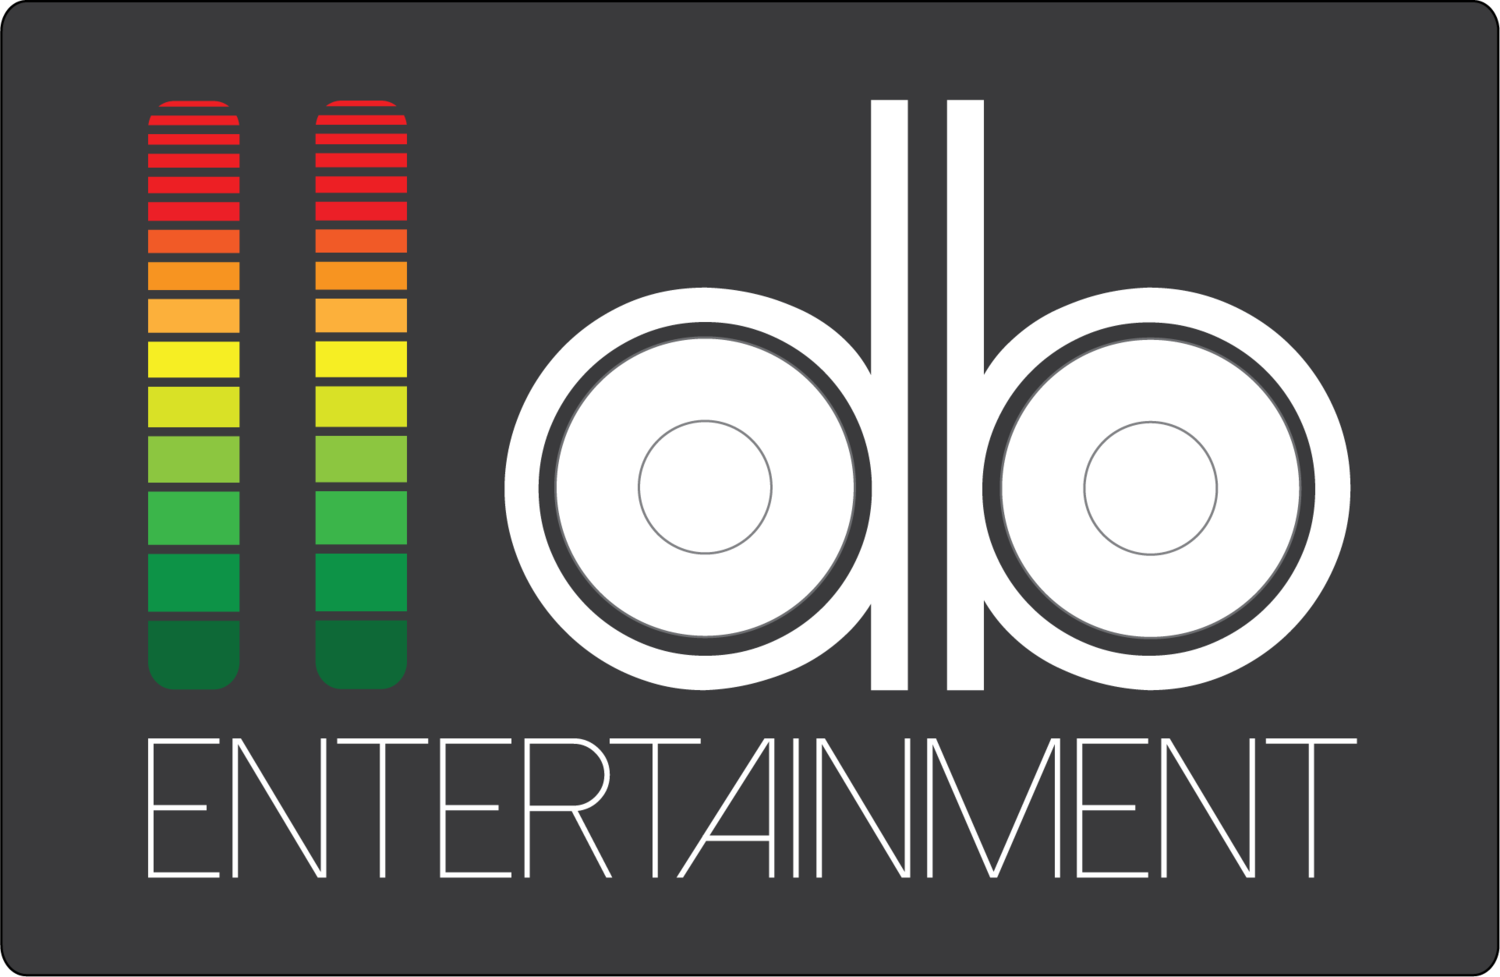 11 db Entertainment